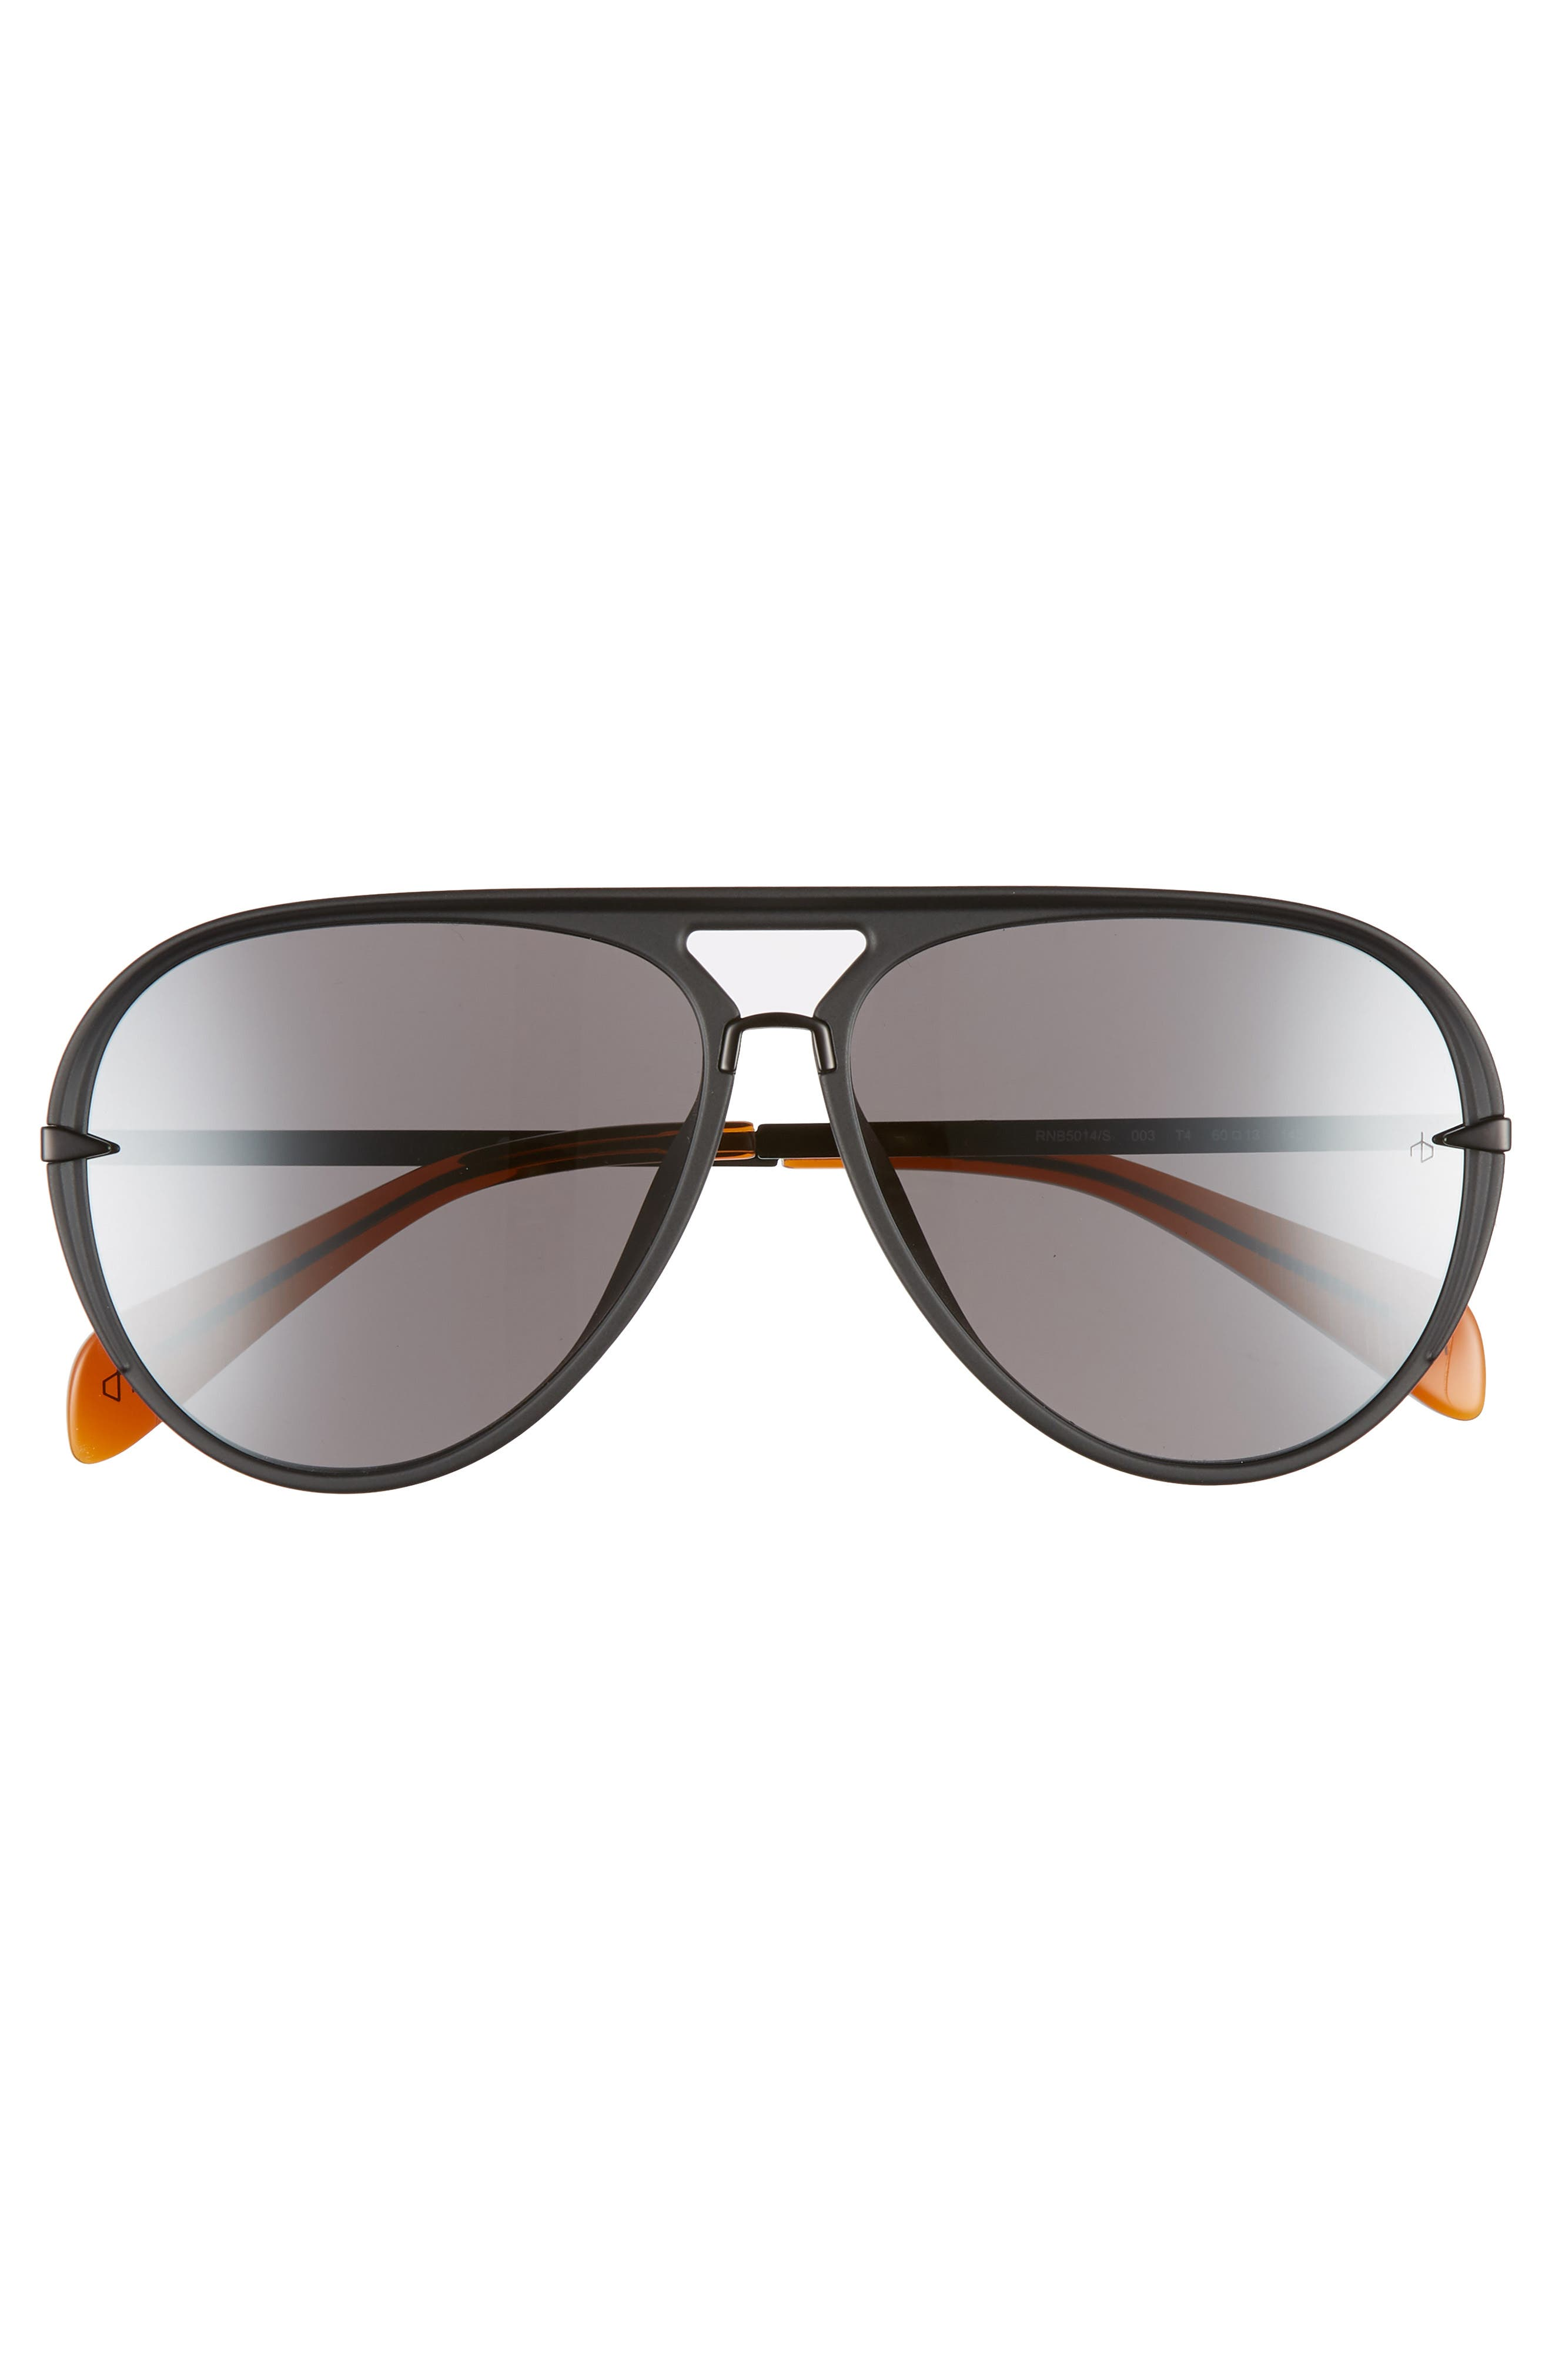 RAG & BONE, 60mm Mirrored Aviator Sunglasses, Alternate thumbnail 3, color, MATTE BLACK